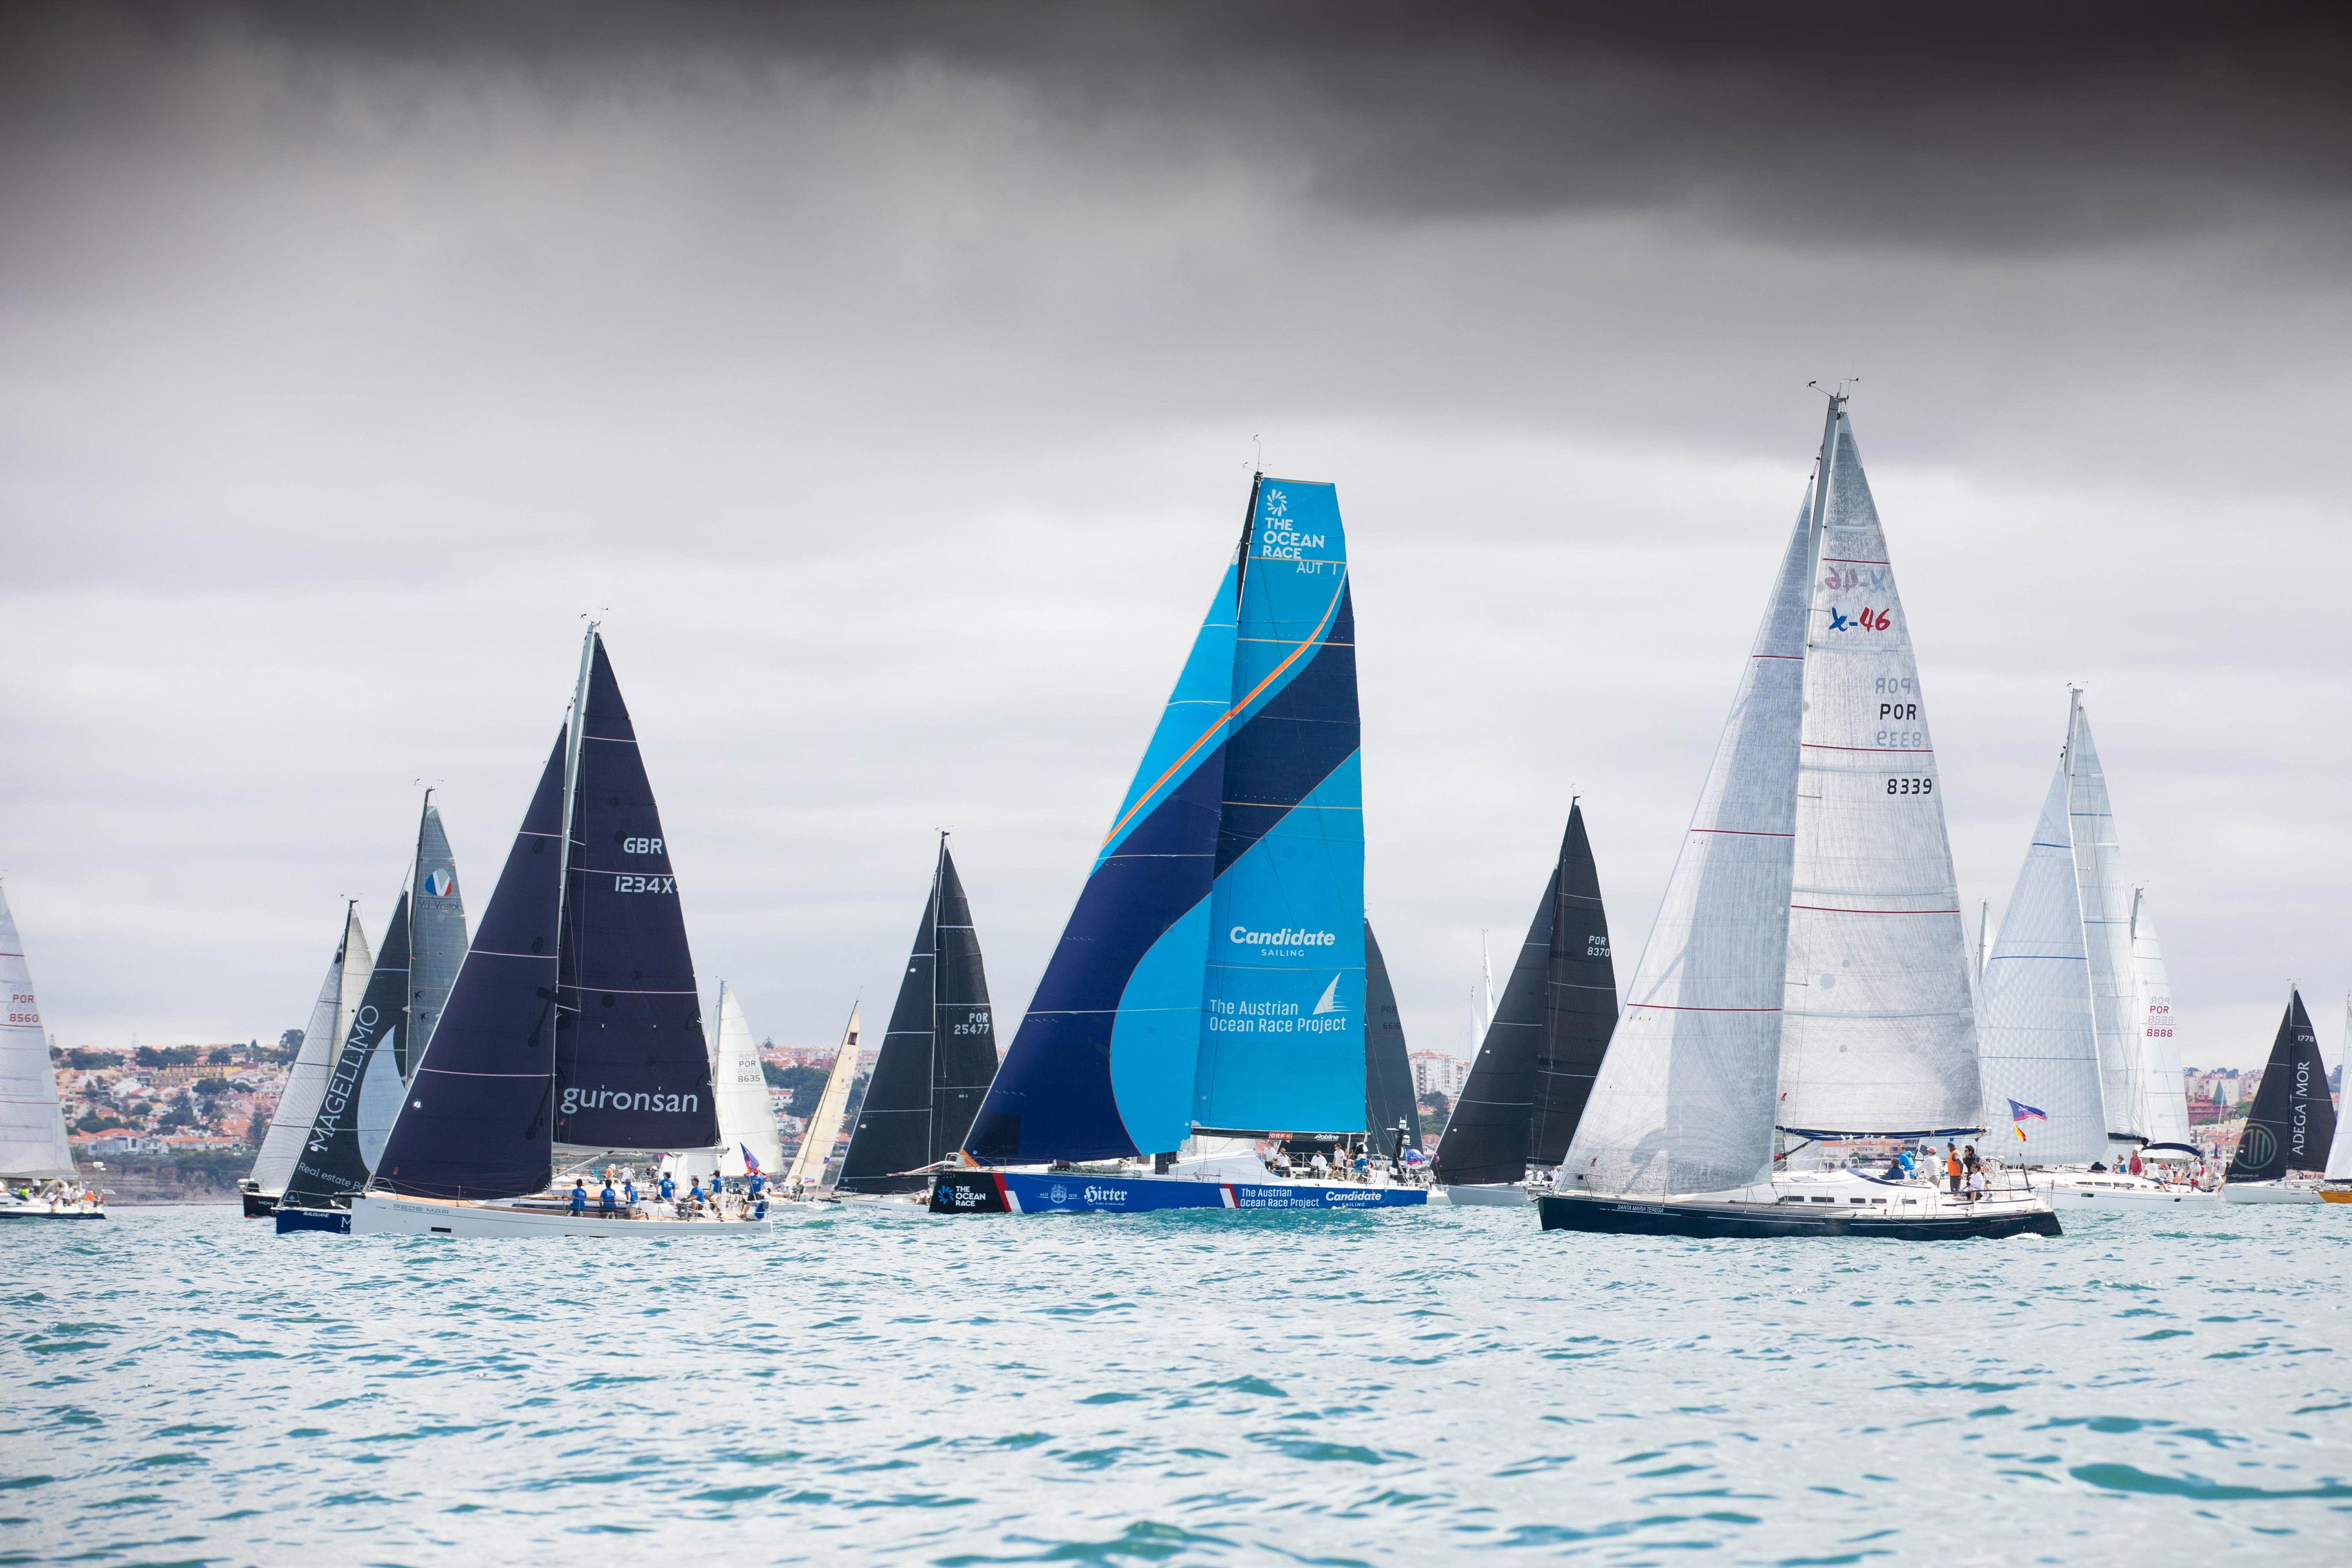 The Mirpuri Foundation Sailing Trophy is committed to playing its part in creating a more responsible and sustainable planet by fighting against the very important issues that are plastic pollution and carbon emissions.